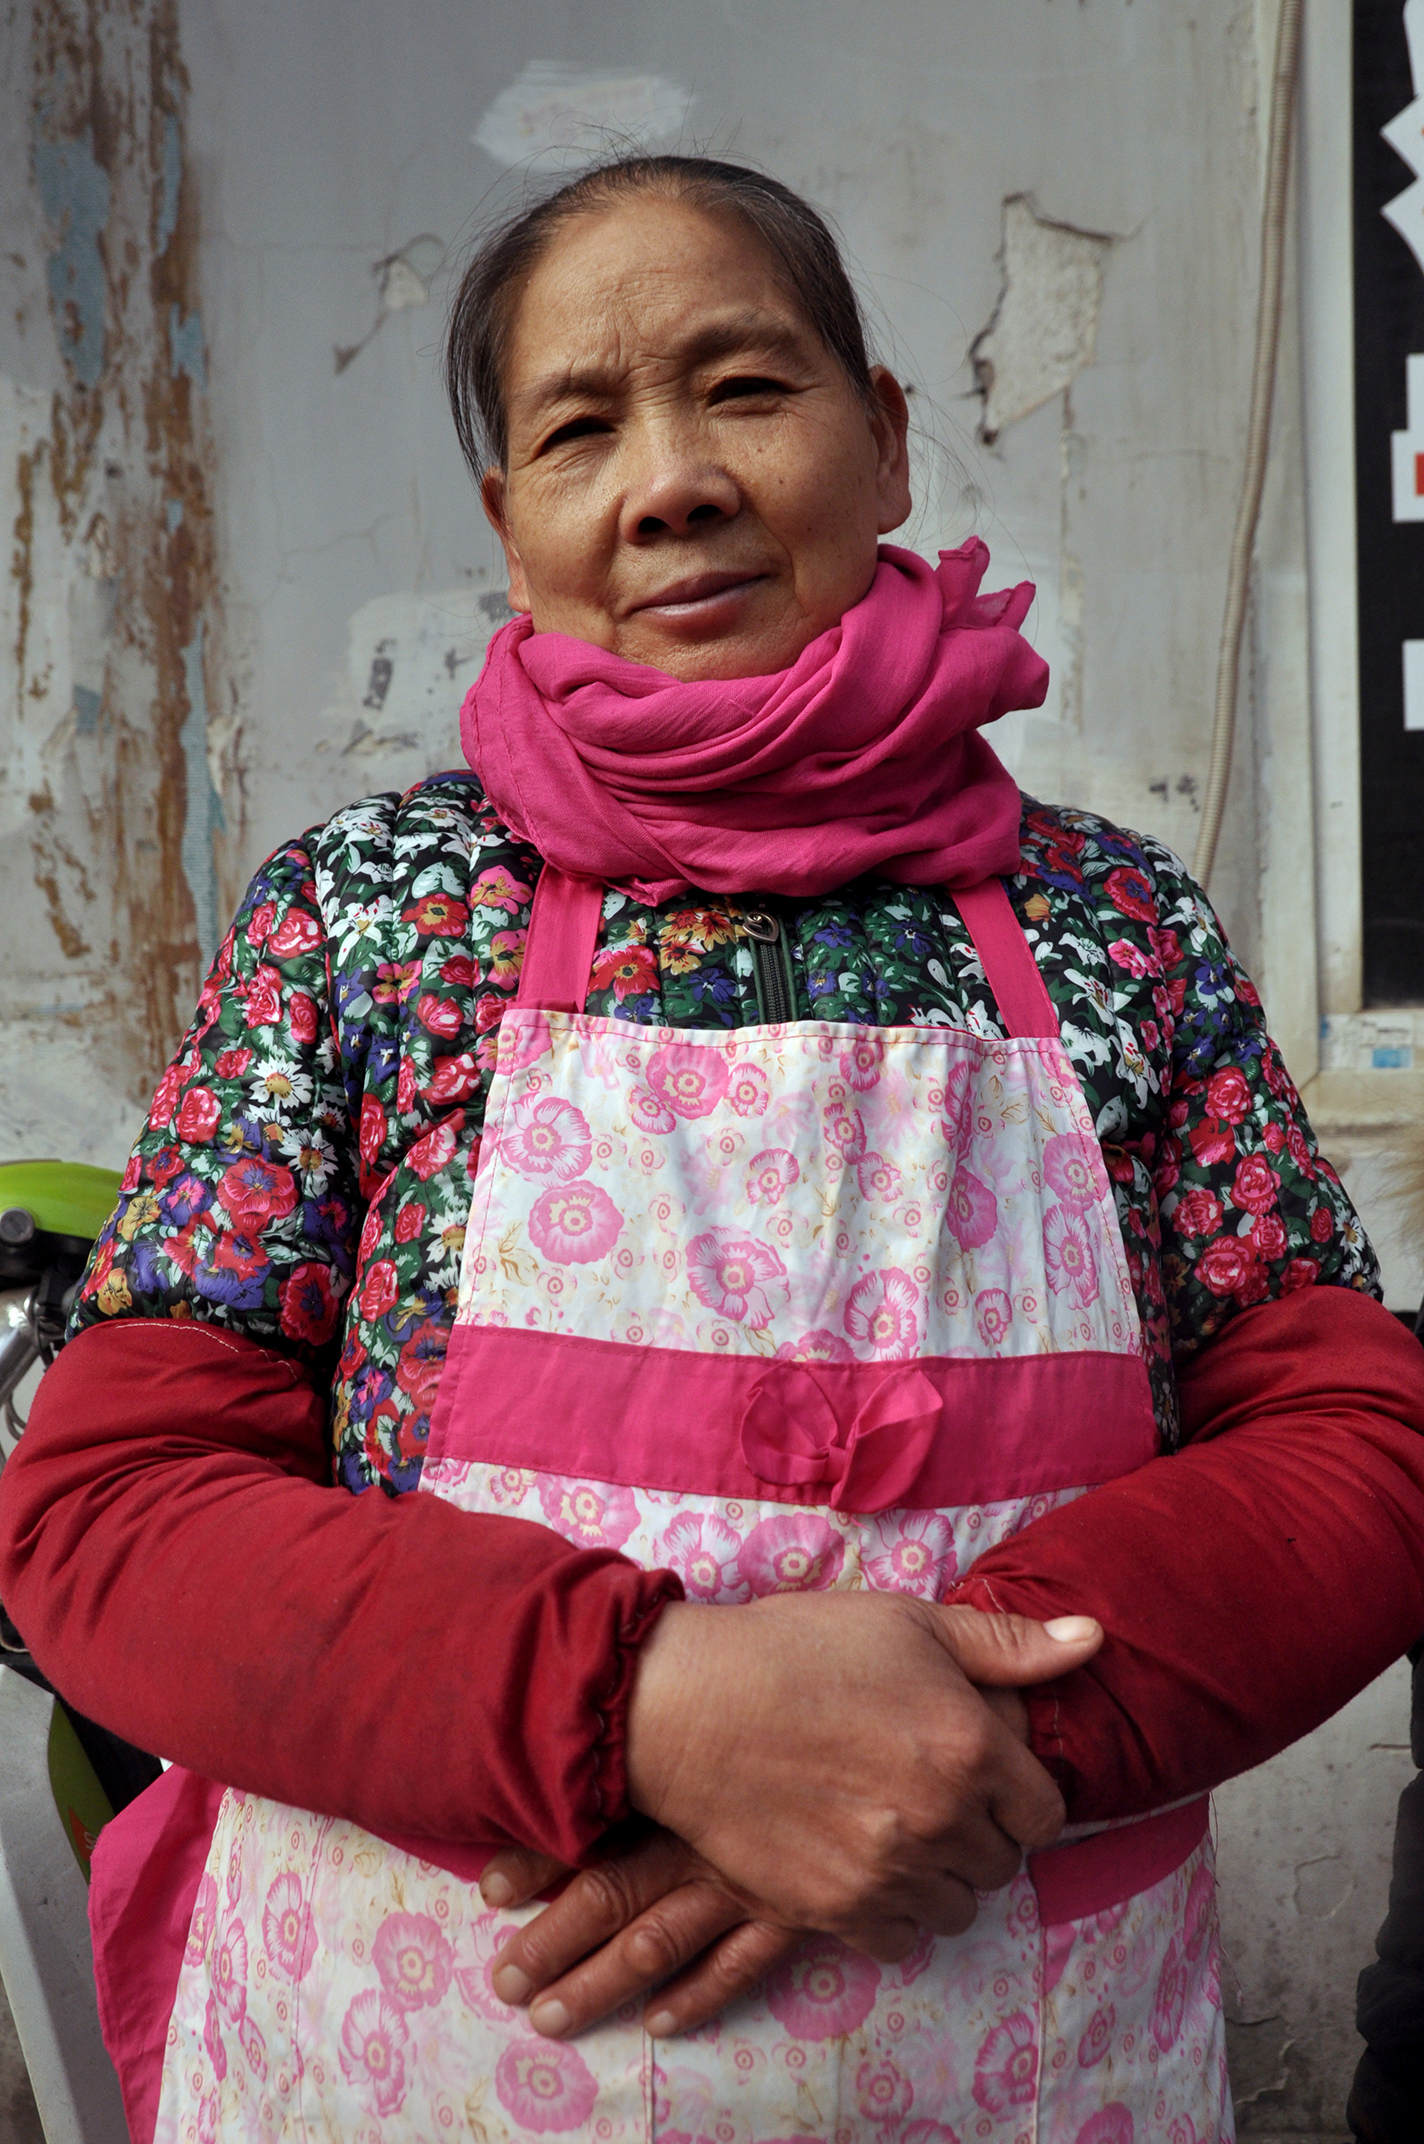 Restaurant proprietor, Wuhan, 2015